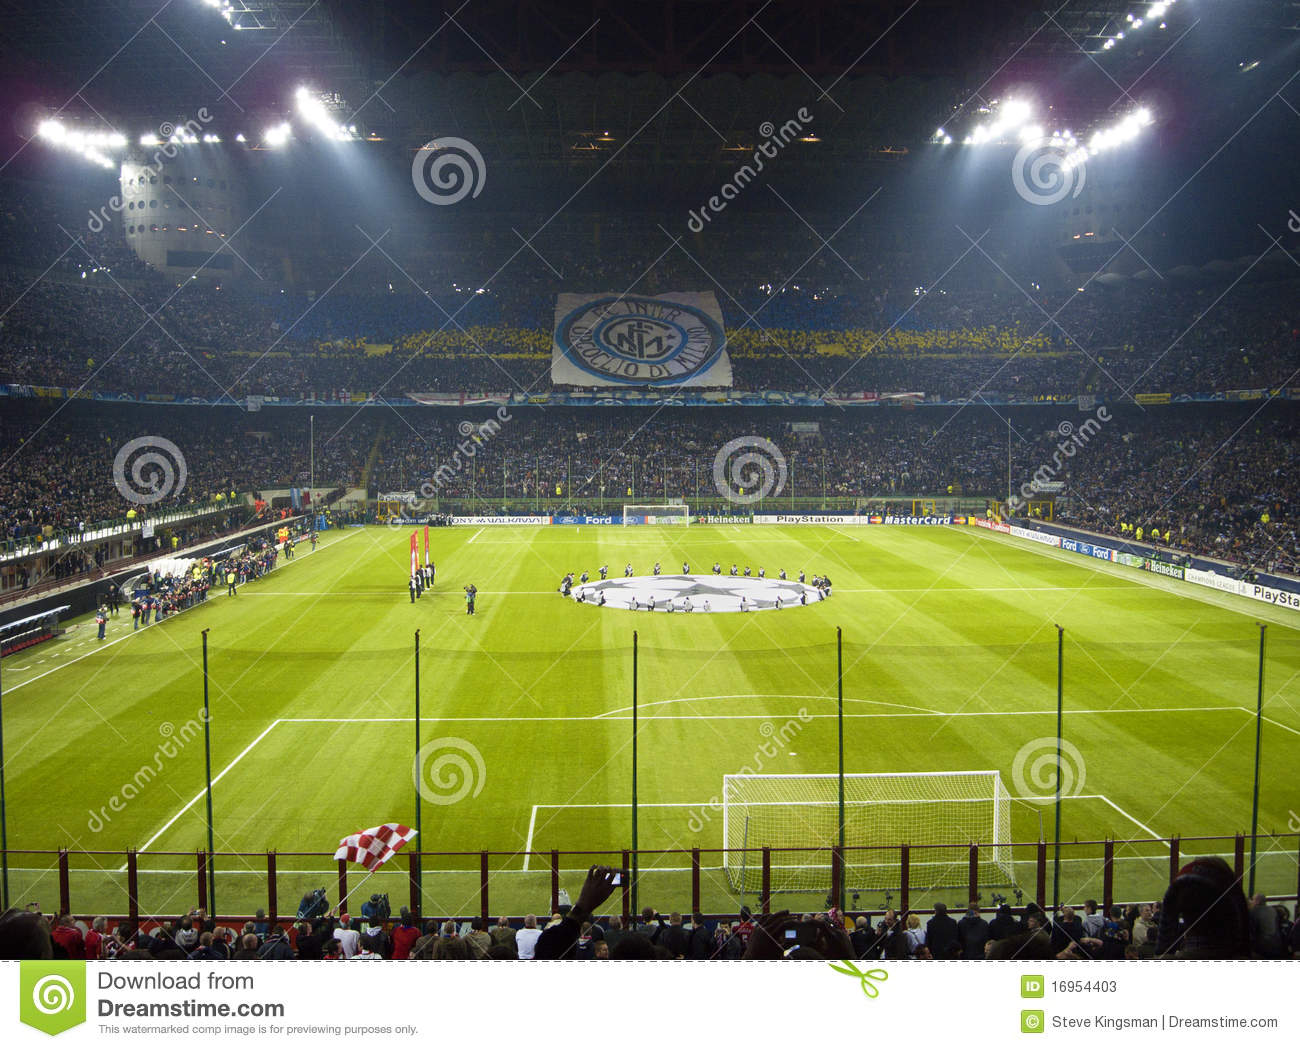 liverpool inter milan march 11 - photo#21